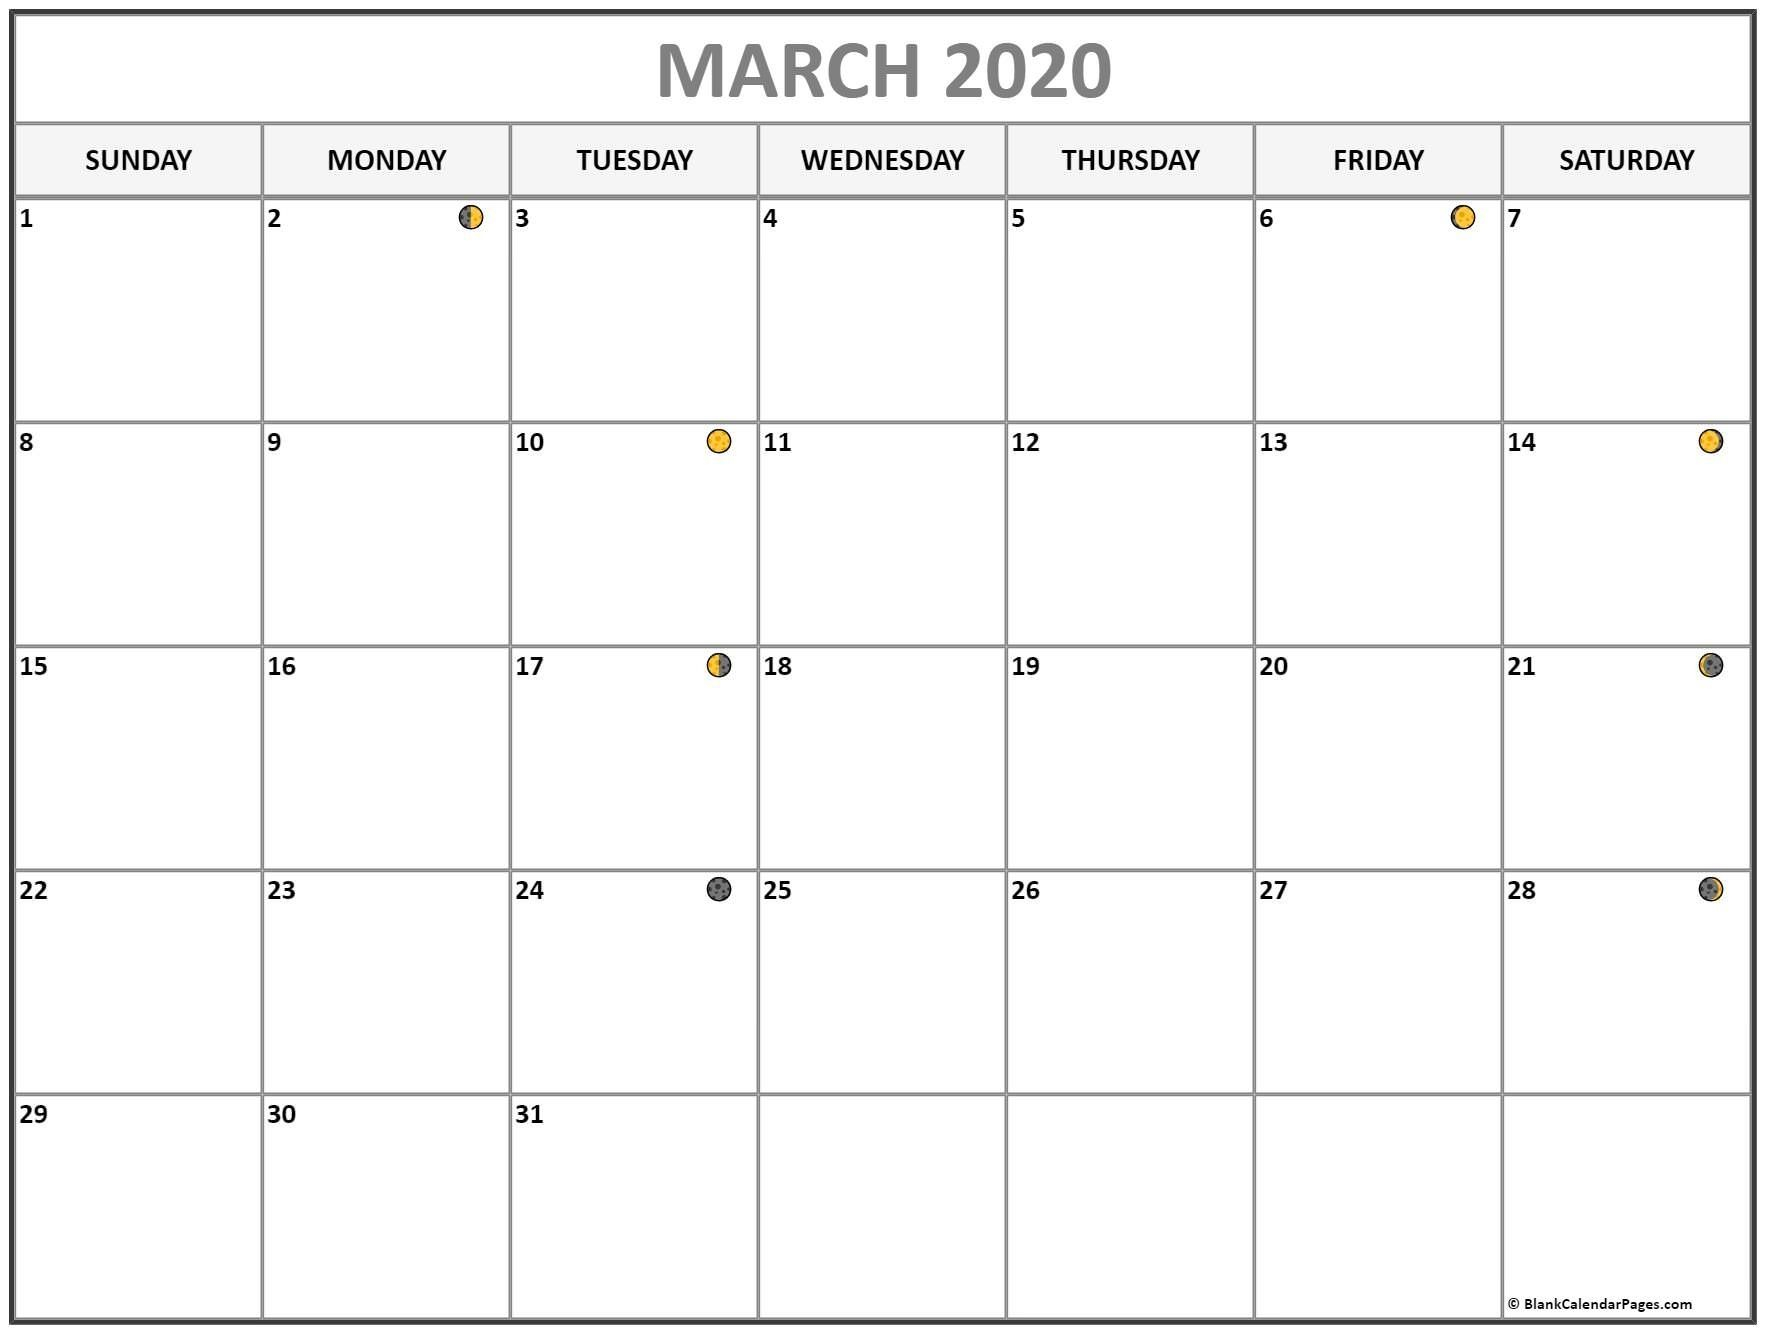 Moon Calendar March 2020 – Full & New Moon In 2020 | Lunar For Moon Calendar 2021 Name And Date For Kids